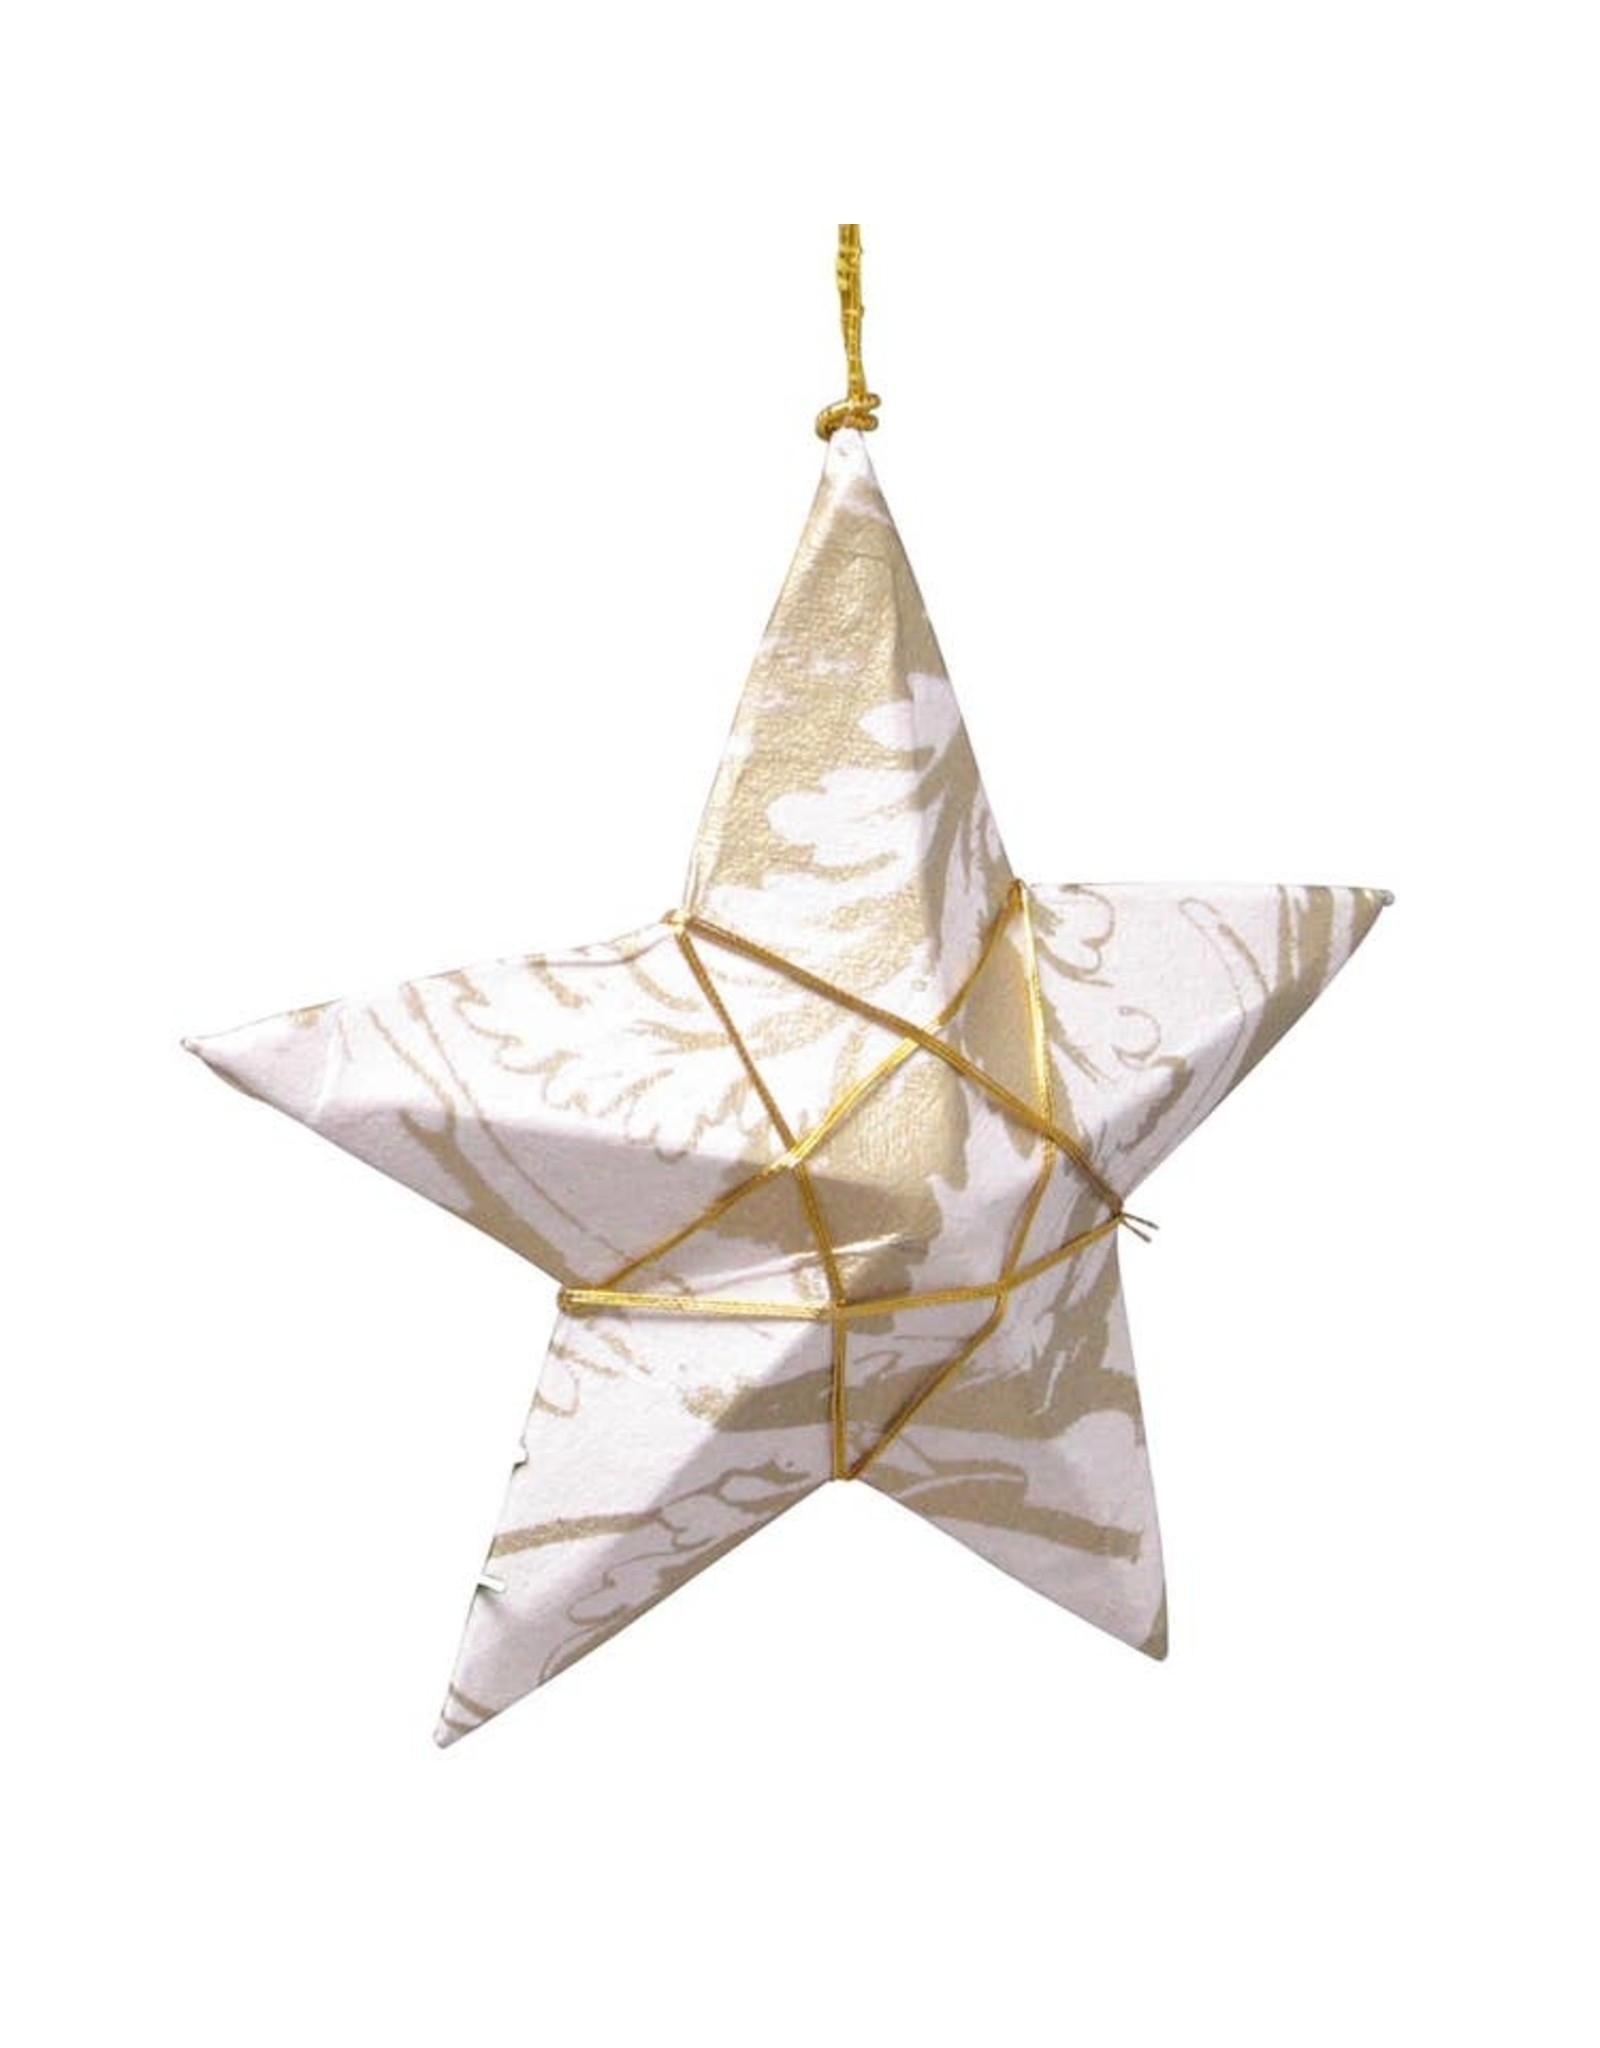 TTV USA Gold Paper Star Ornament, Bangladesh